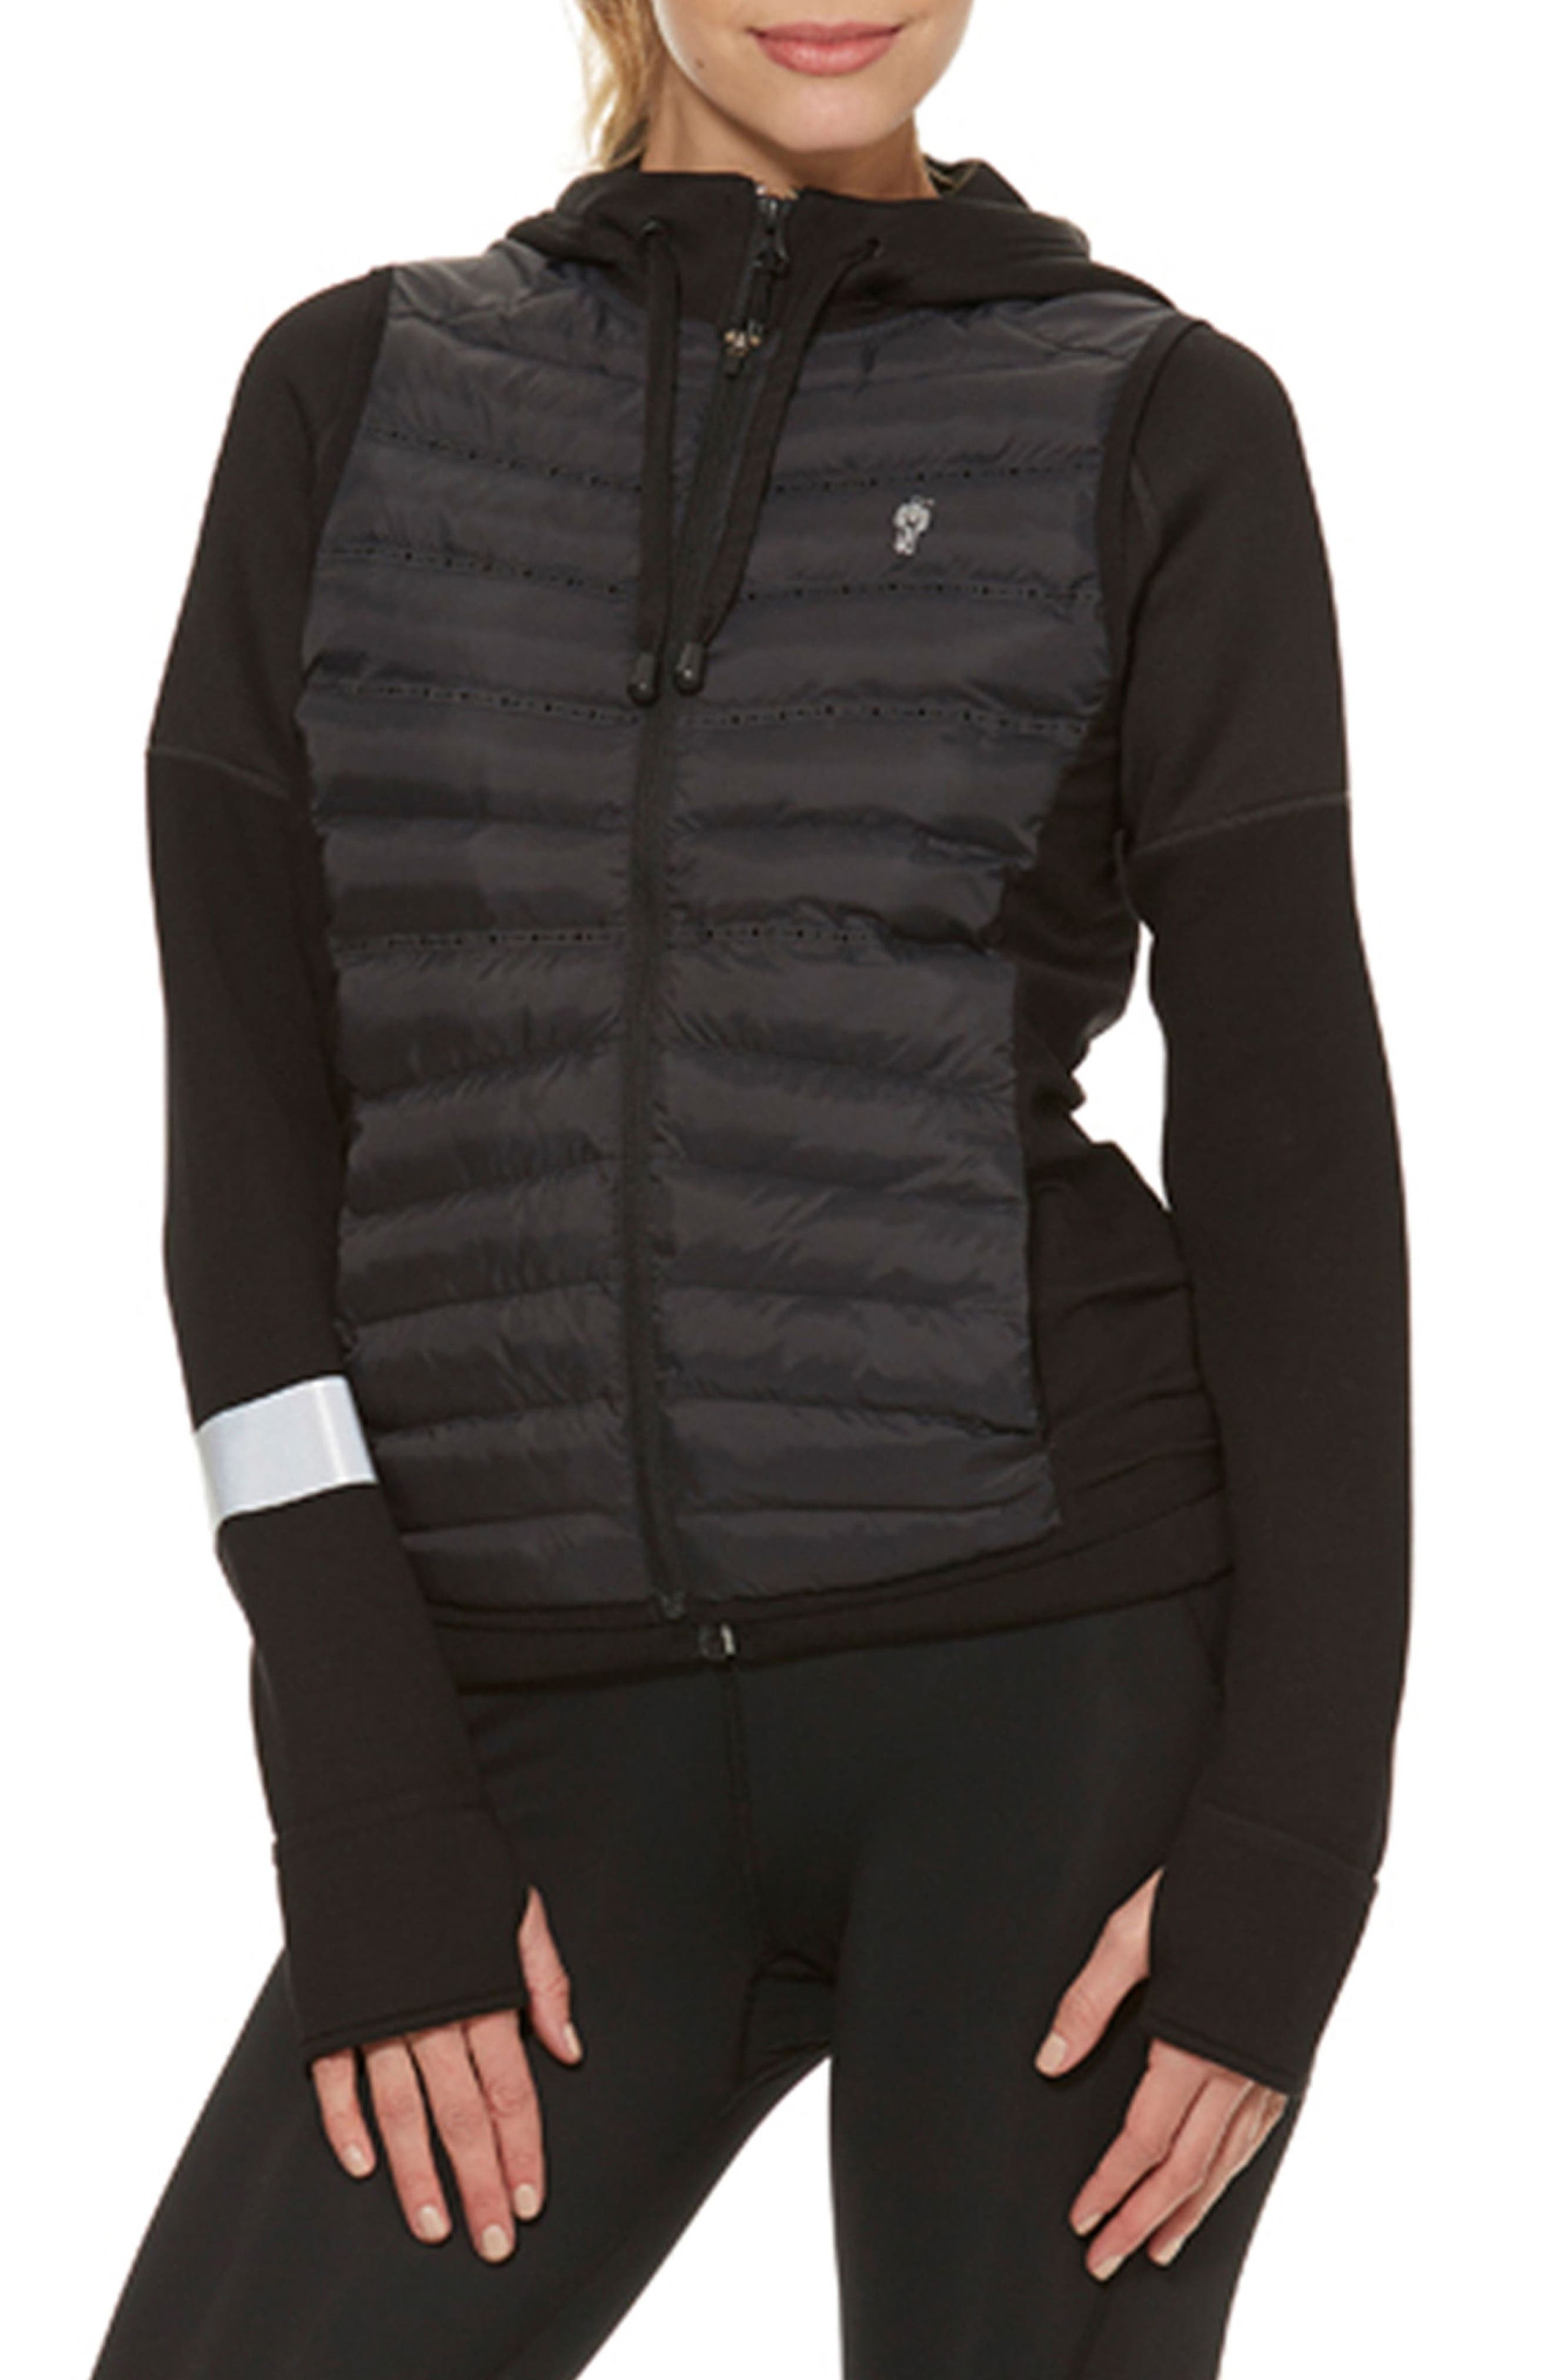 Brecon Beacons Water-Resistant & Windproof Insulated 2-in-1 Jacket,                             Main thumbnail 1, color,                             Black